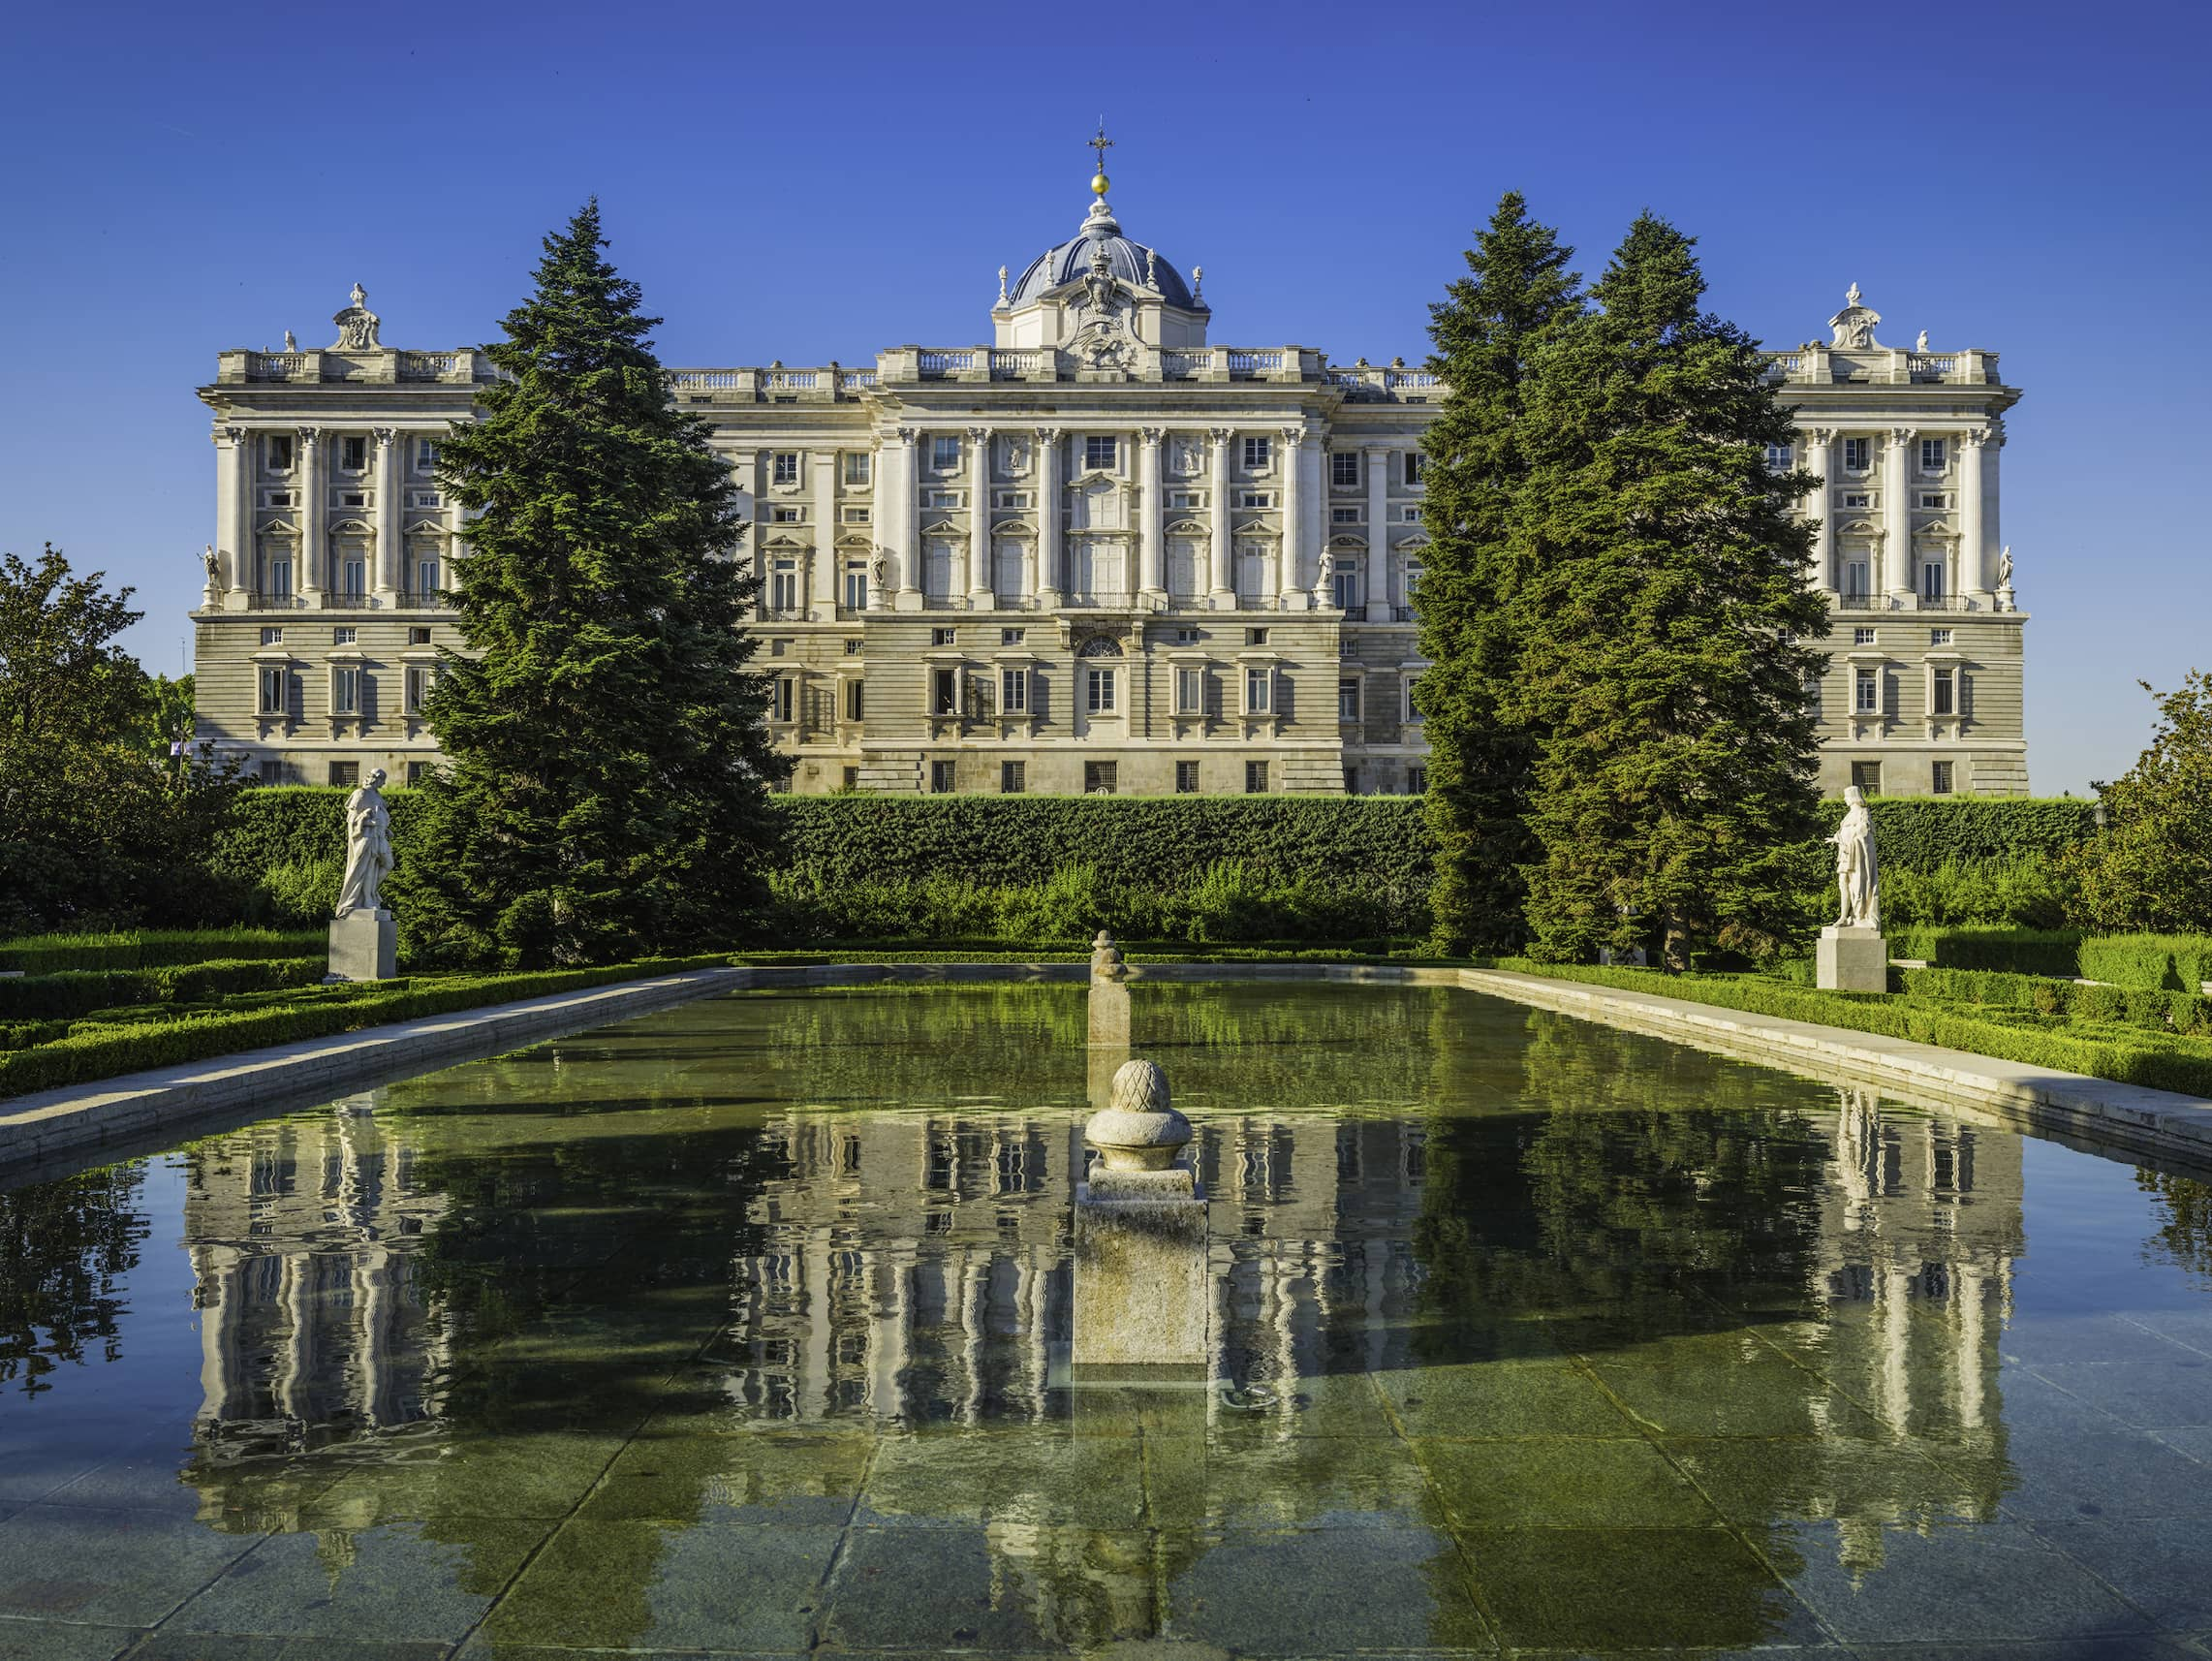 Get an inside look at the Royal Palace